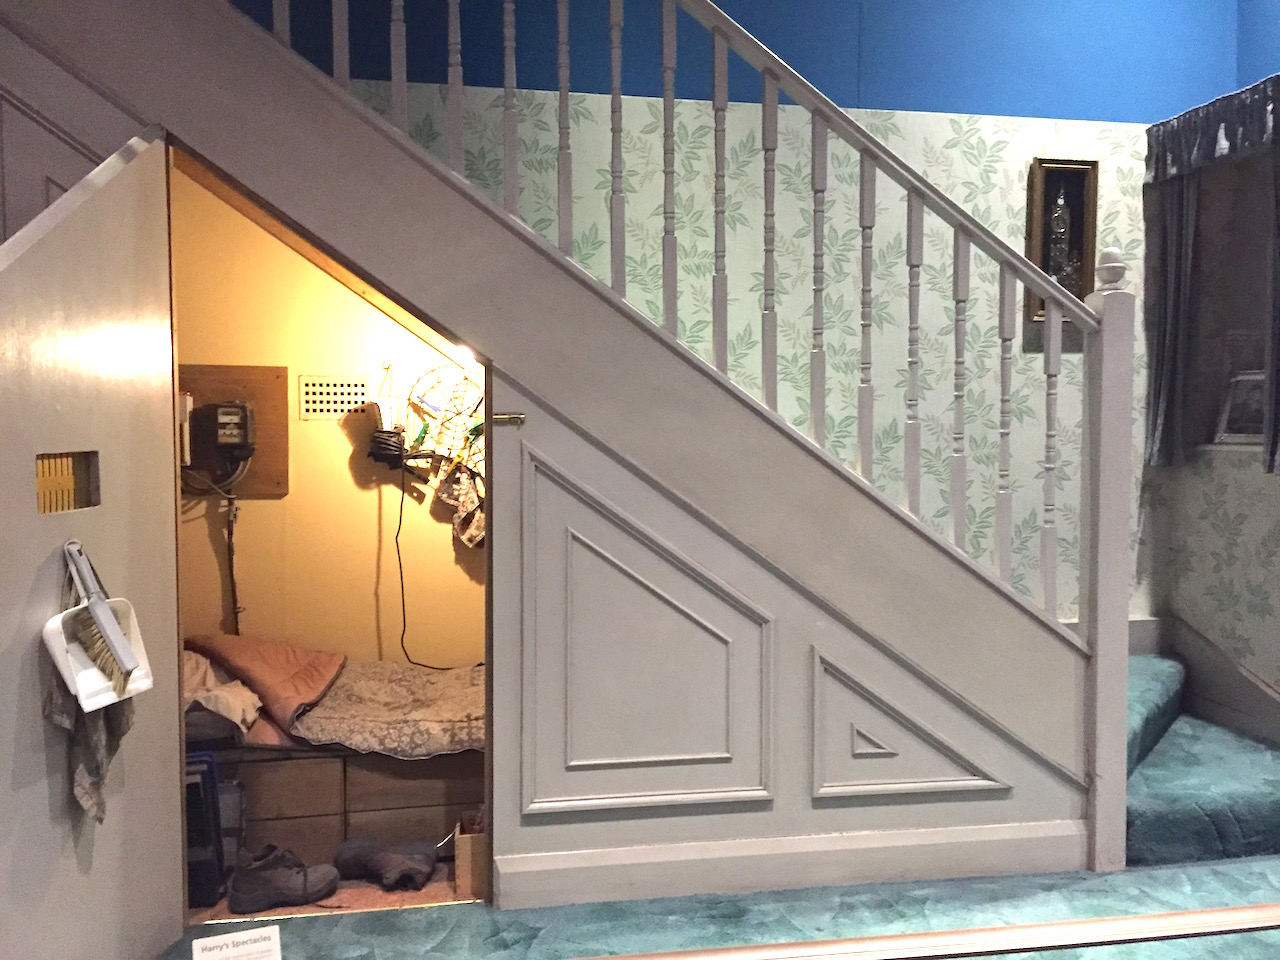 Dream Room The Cupboard Under The Stairs Part 1 The Wonder Of Miniature Worlds